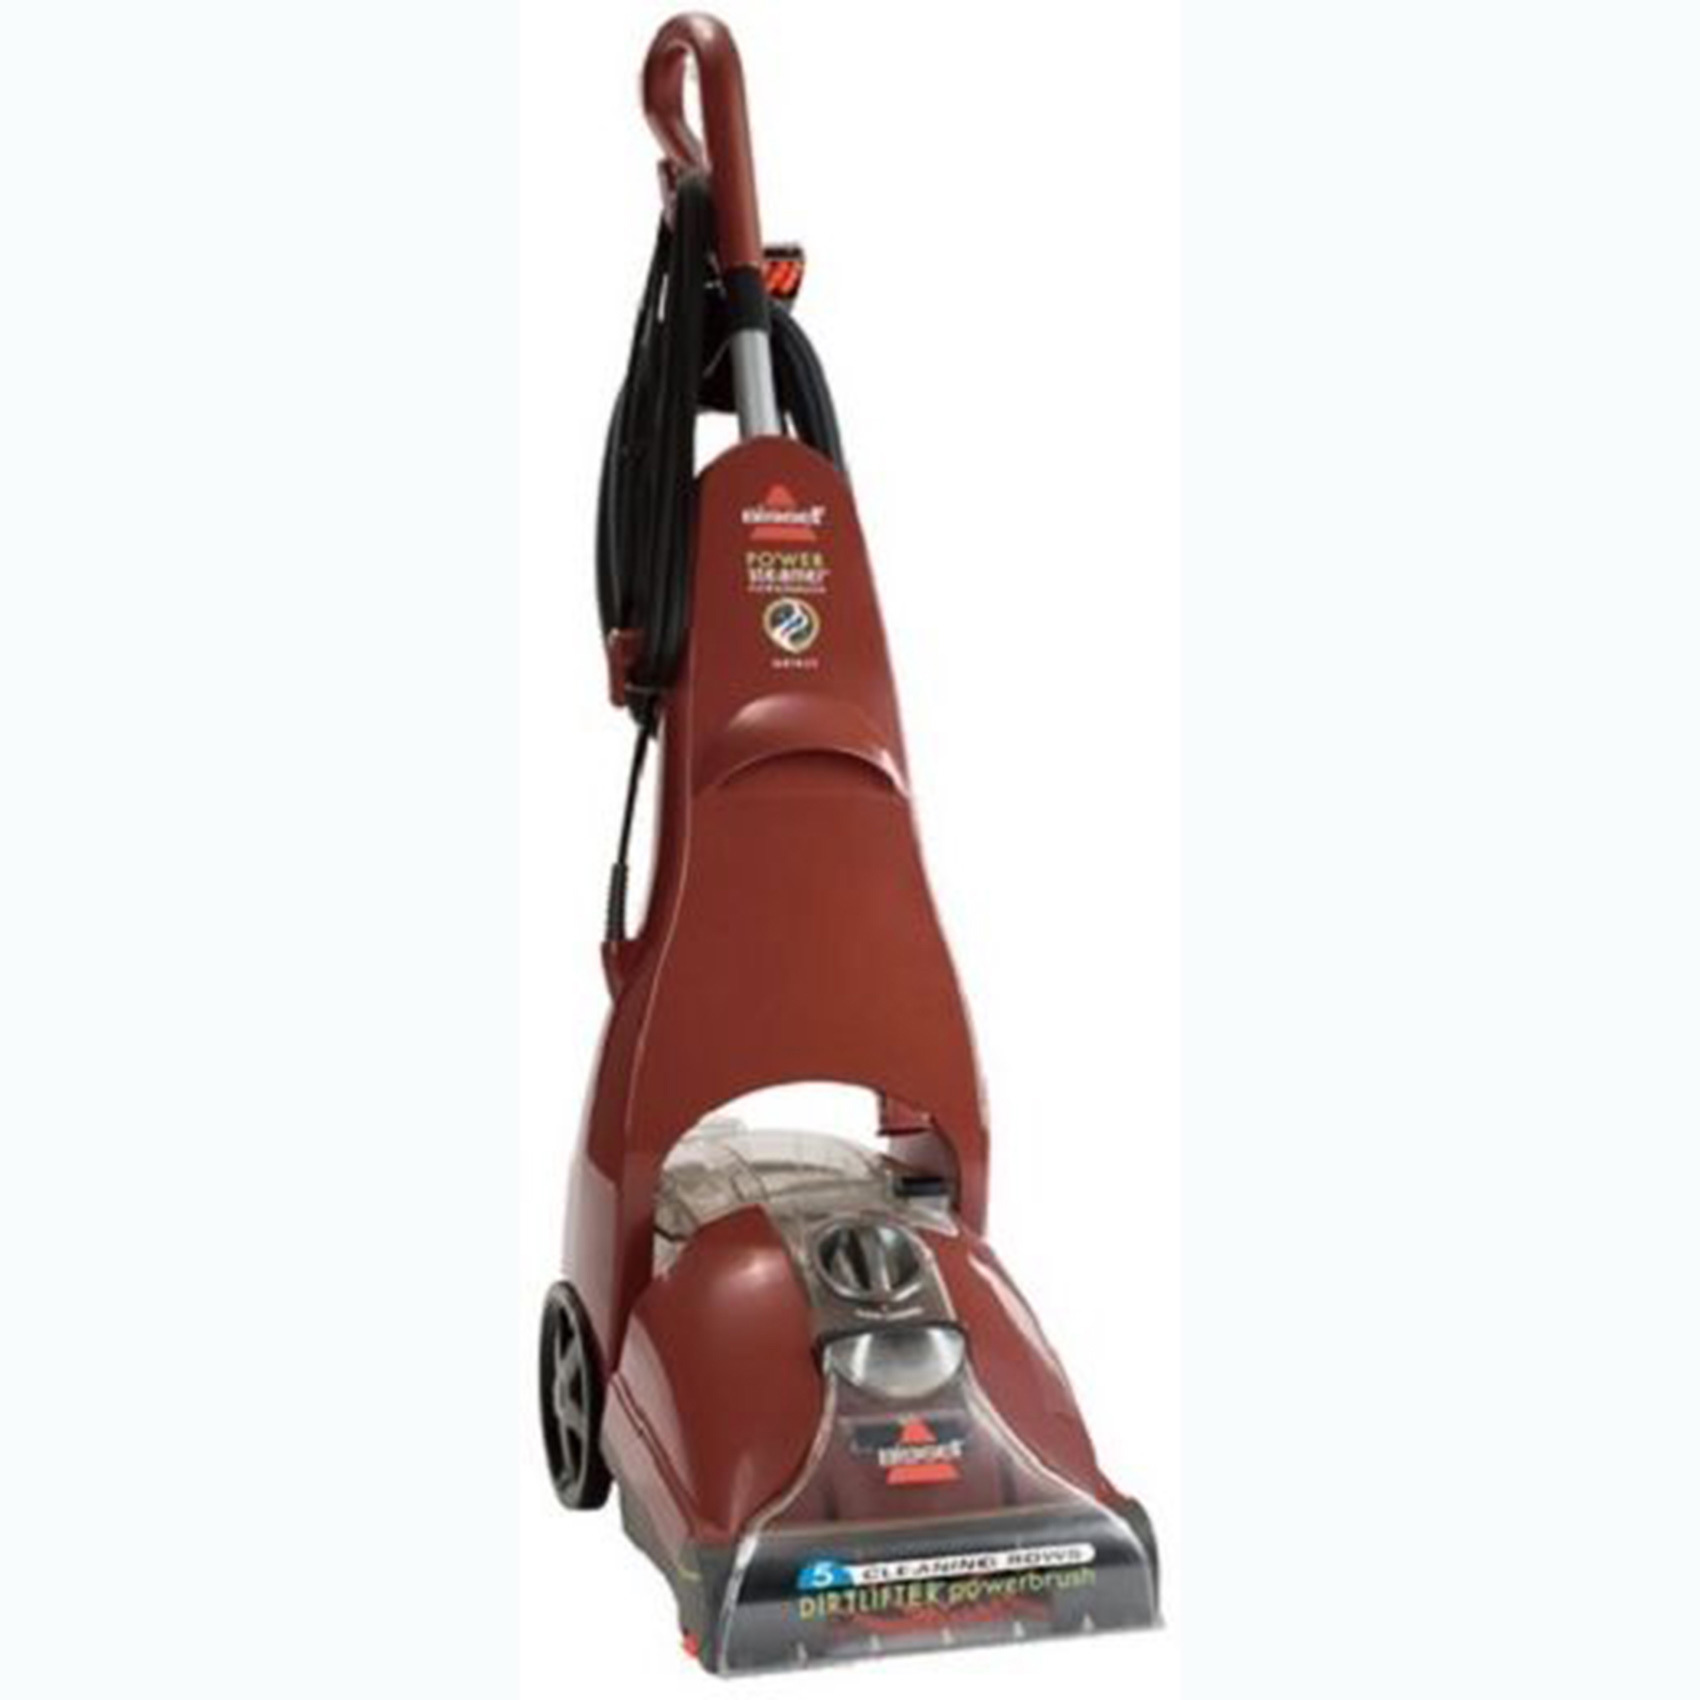 BISSELL CARPET WASHER BISM-1623